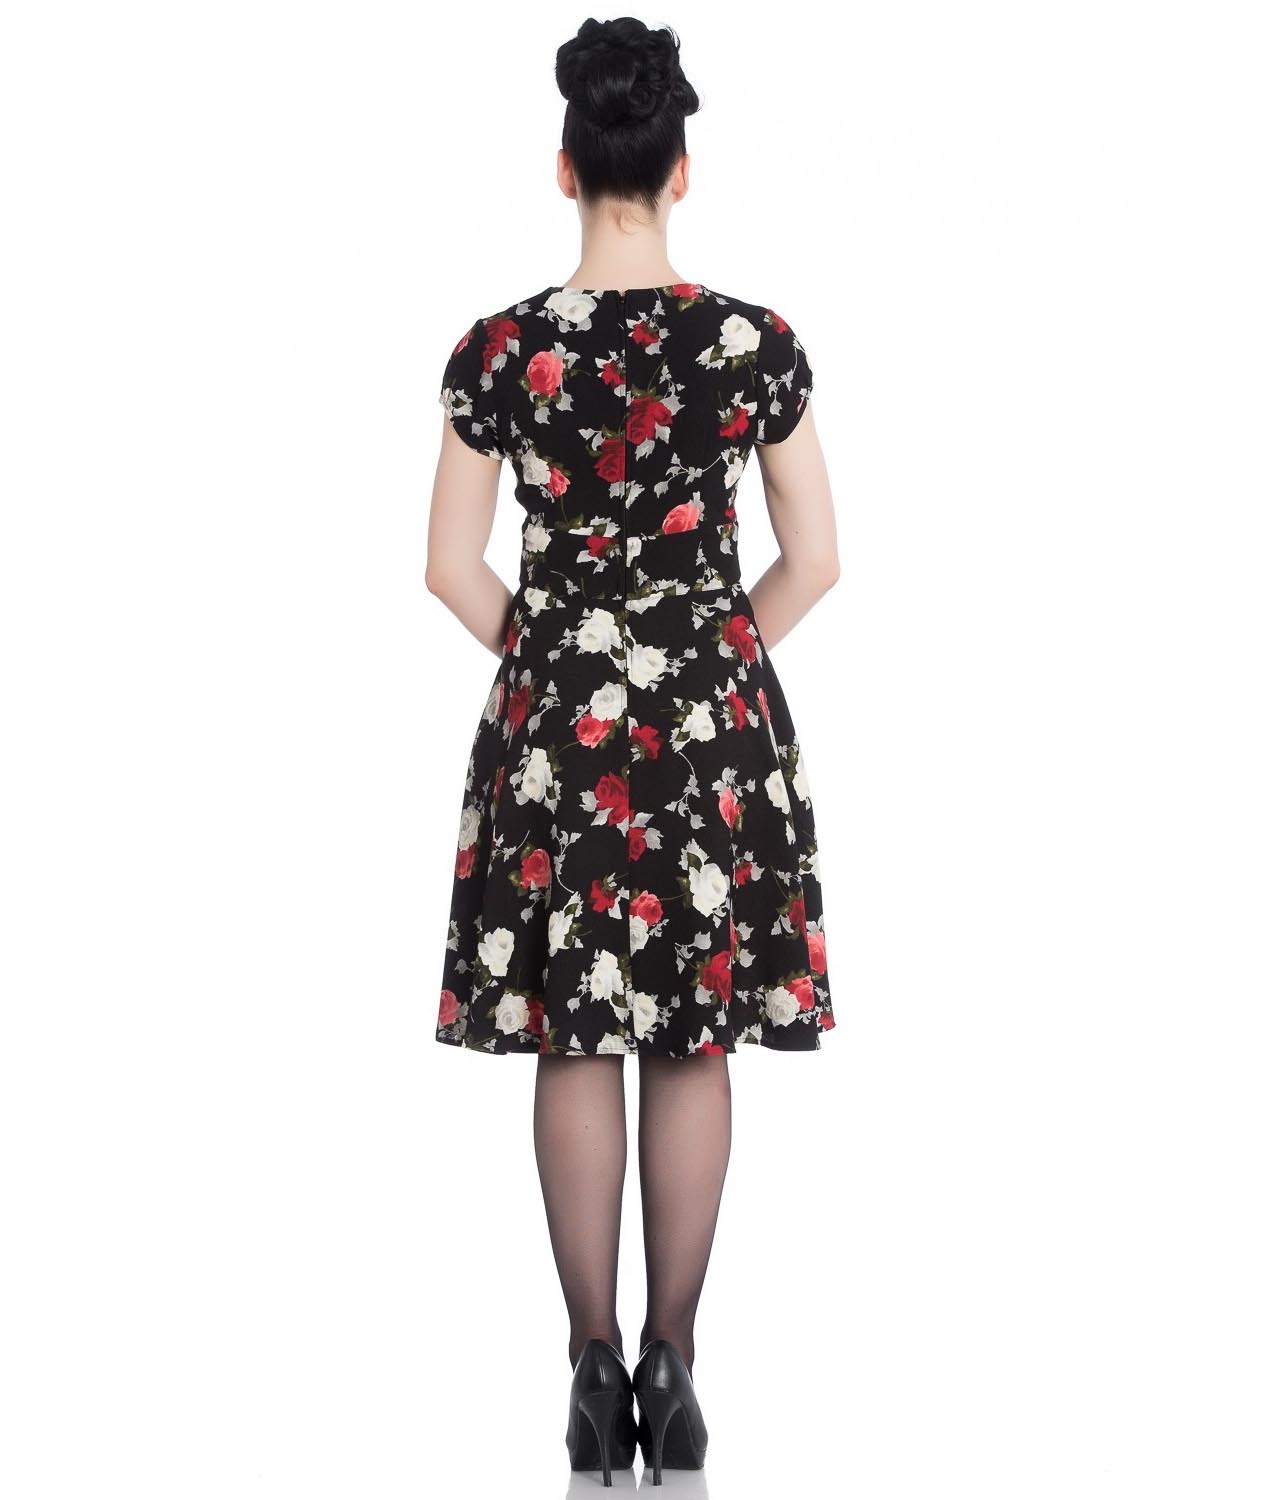 Hell-Bunny-40s-50s-Elegant-Pin-Up-Dress-VALENTINA-Black-Roses thumbnail 5